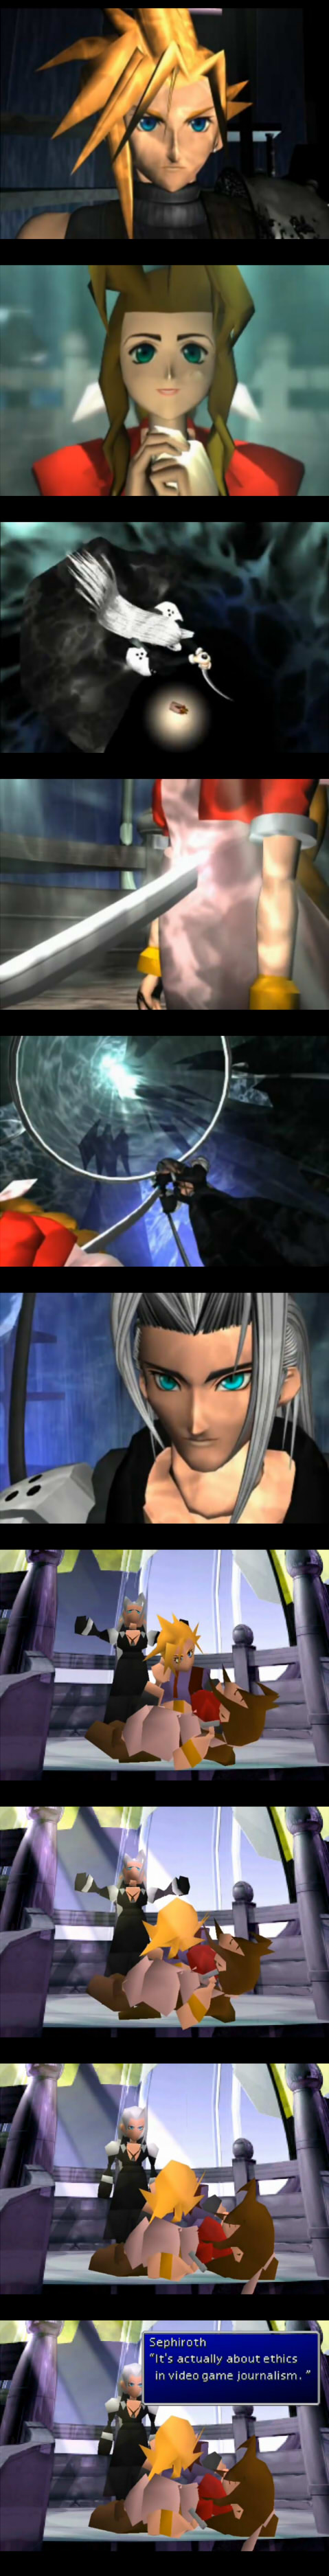 Sephiroth kill scene from Final Fantasy. Sephiroth: Actually it's about ethics in games journalism